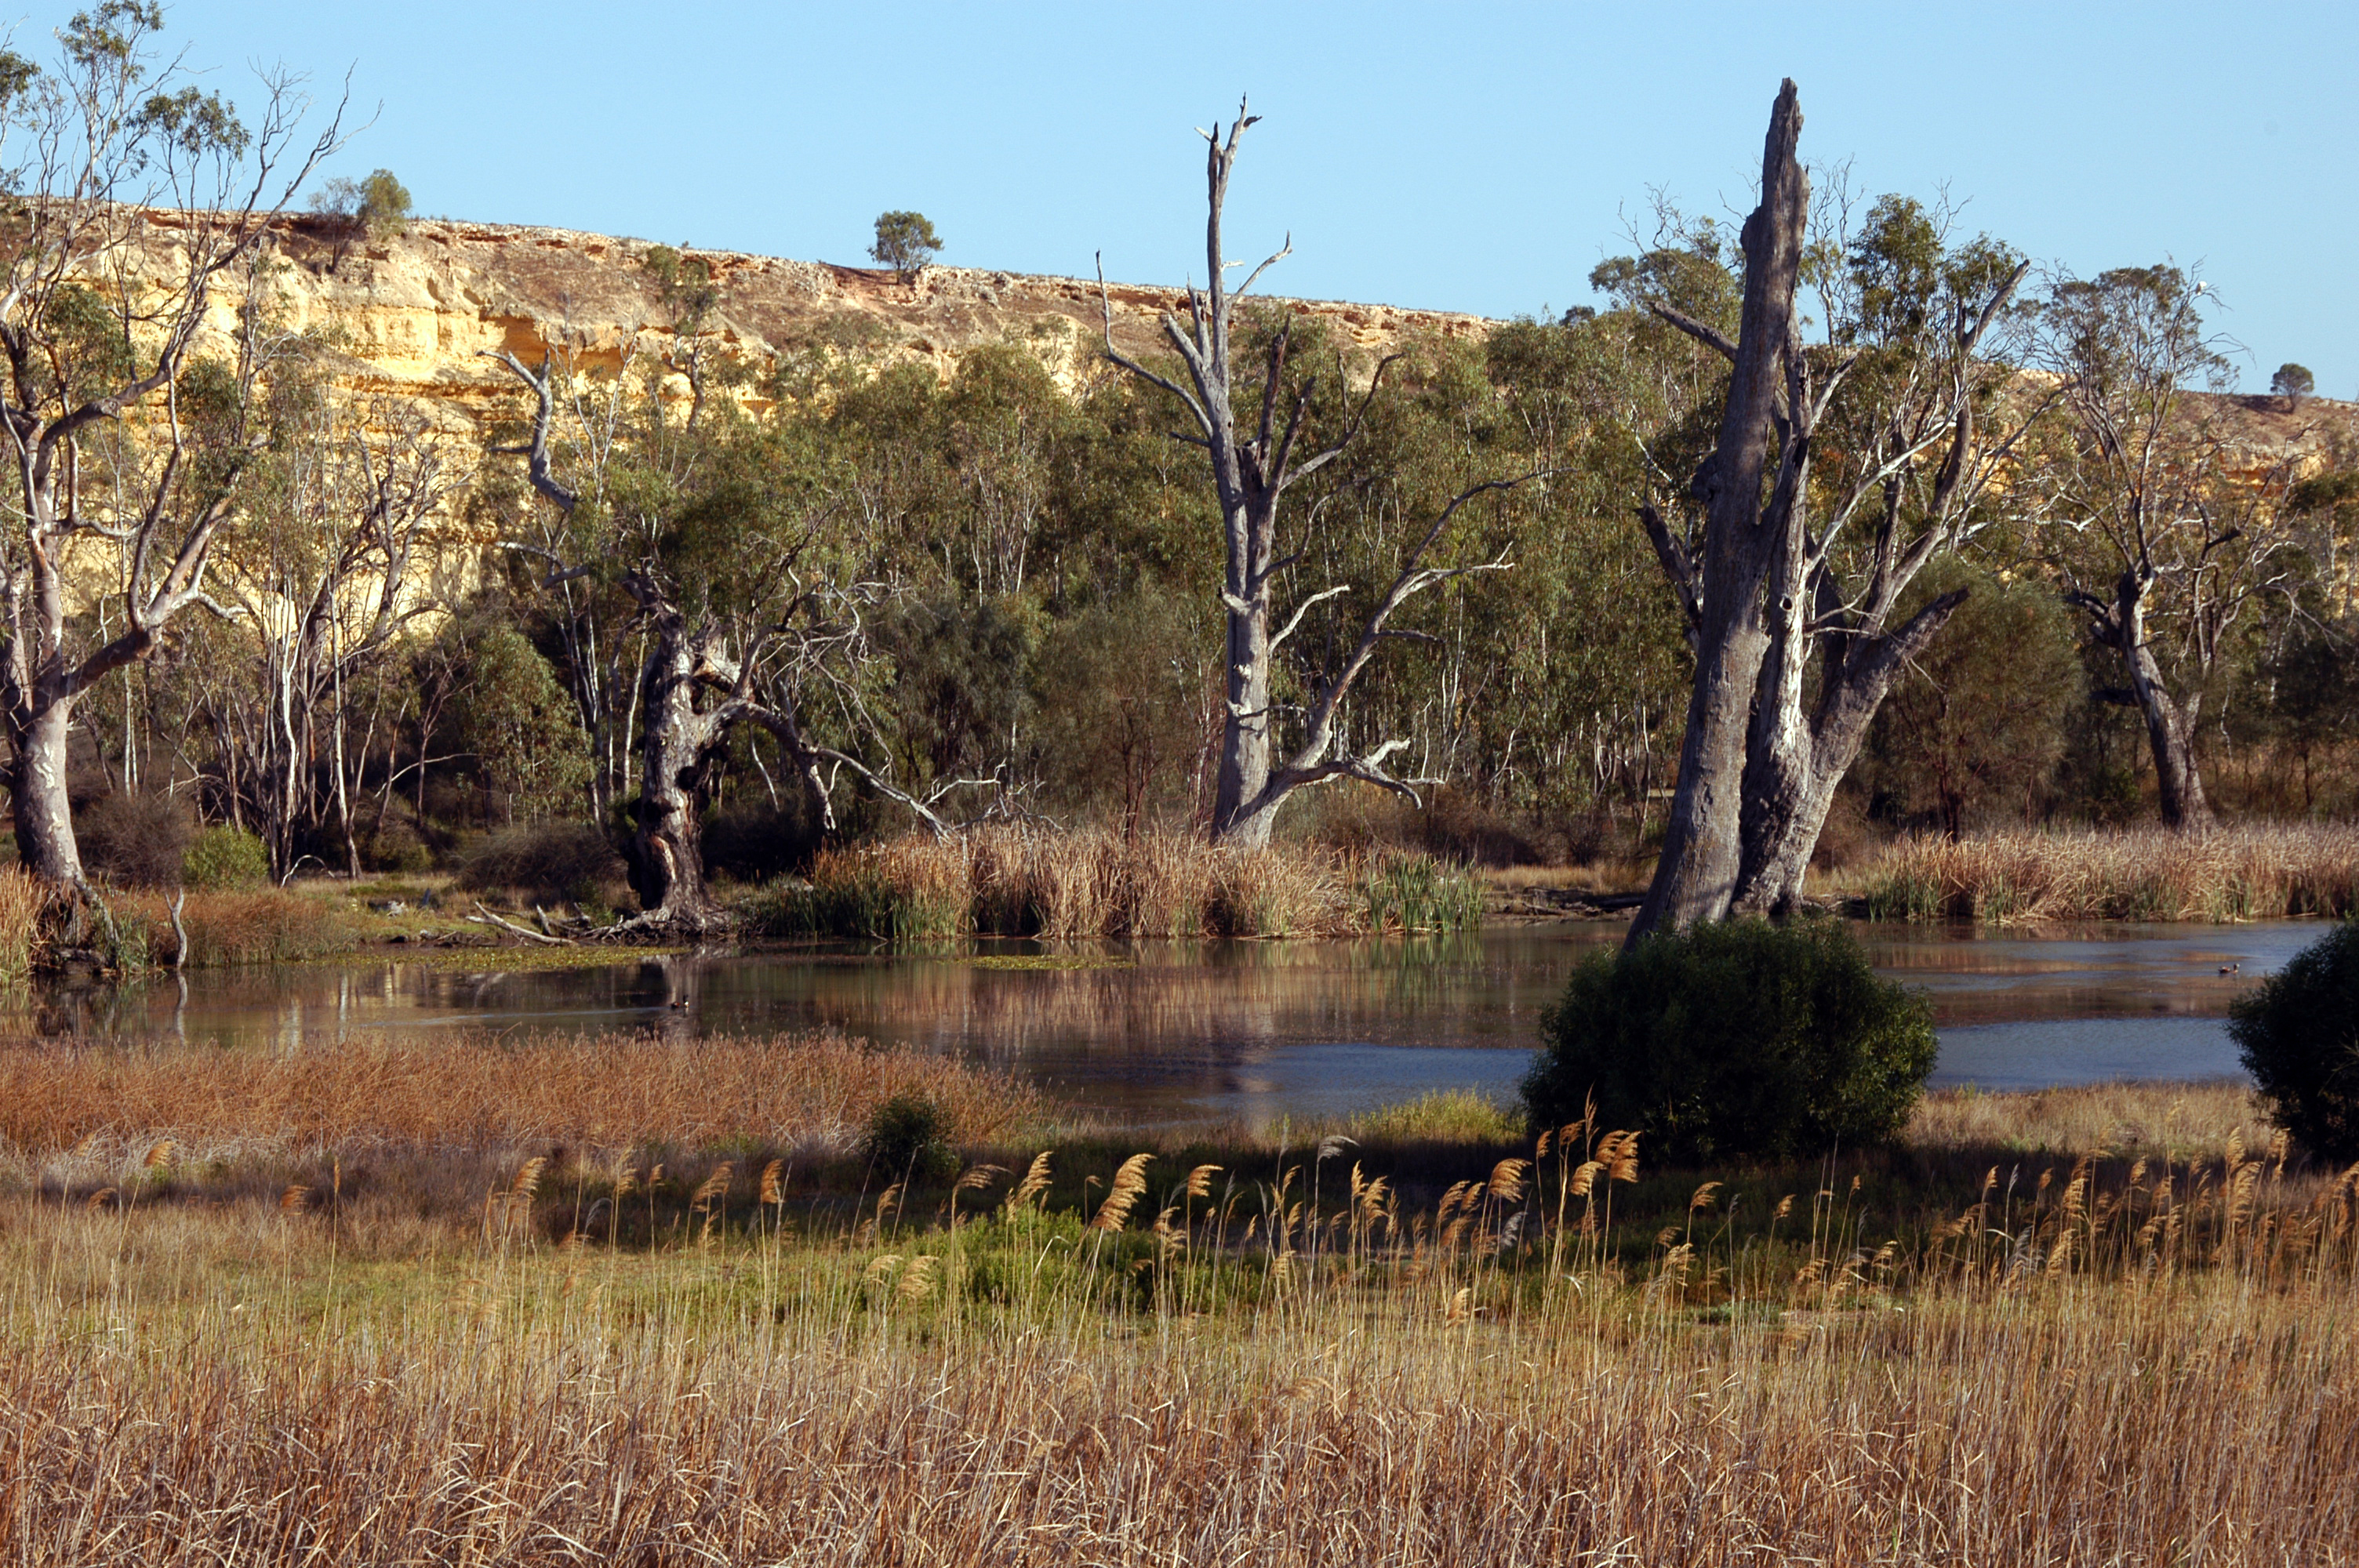 Backwaters of the River Murray above Lock 1 at Murbpook Lagoon, SA. September 2007. (Source: Grig Rinder)